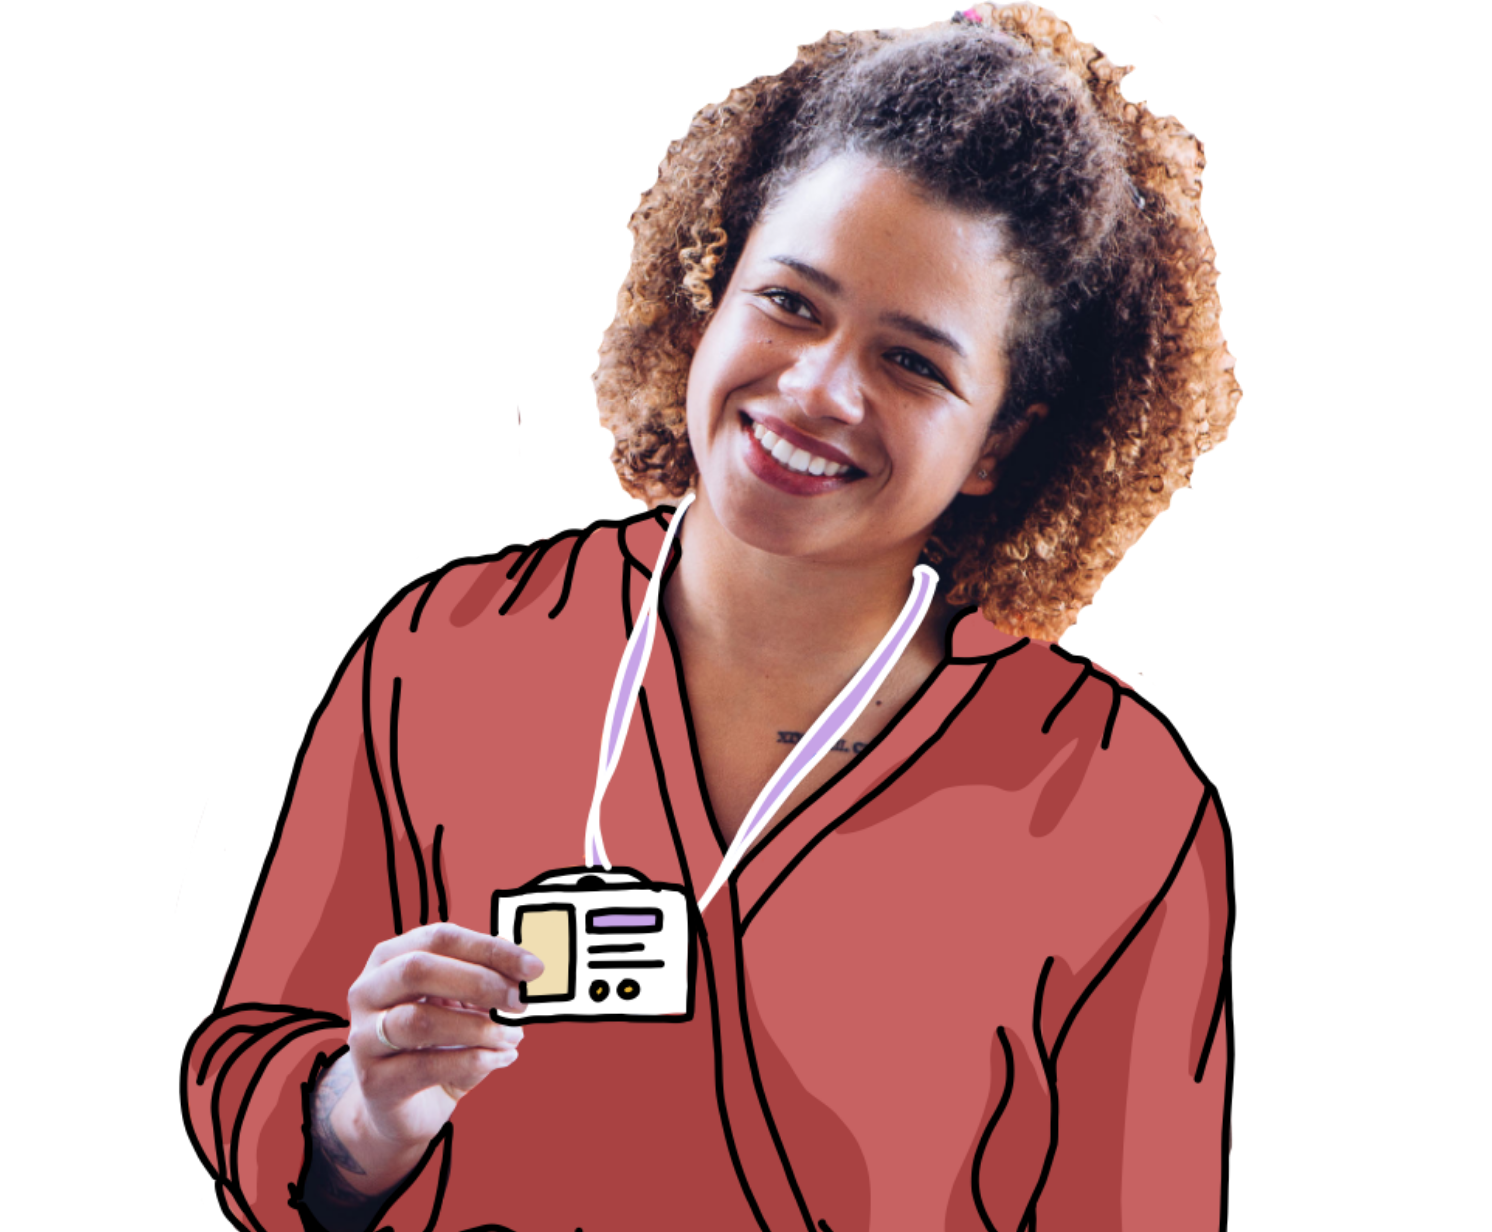 Illustration caregiver at door with badge cutout